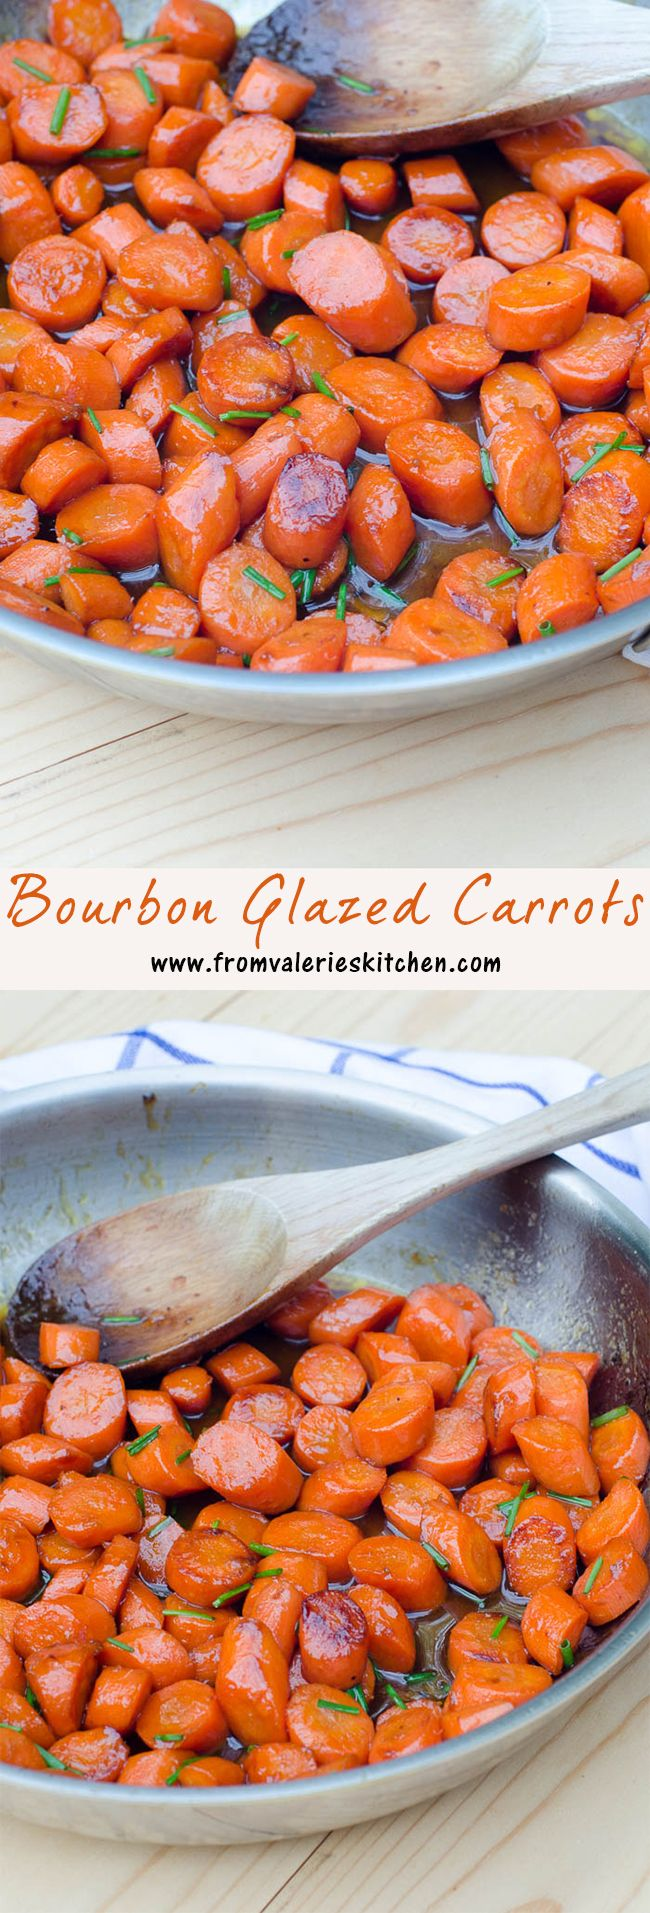 These buttery, booze spiked carrots are absolutely spot-on perfect to spruce up any holiday or special occasion menu. ~ http://www.fromvalerieskitchen.com/wordpress